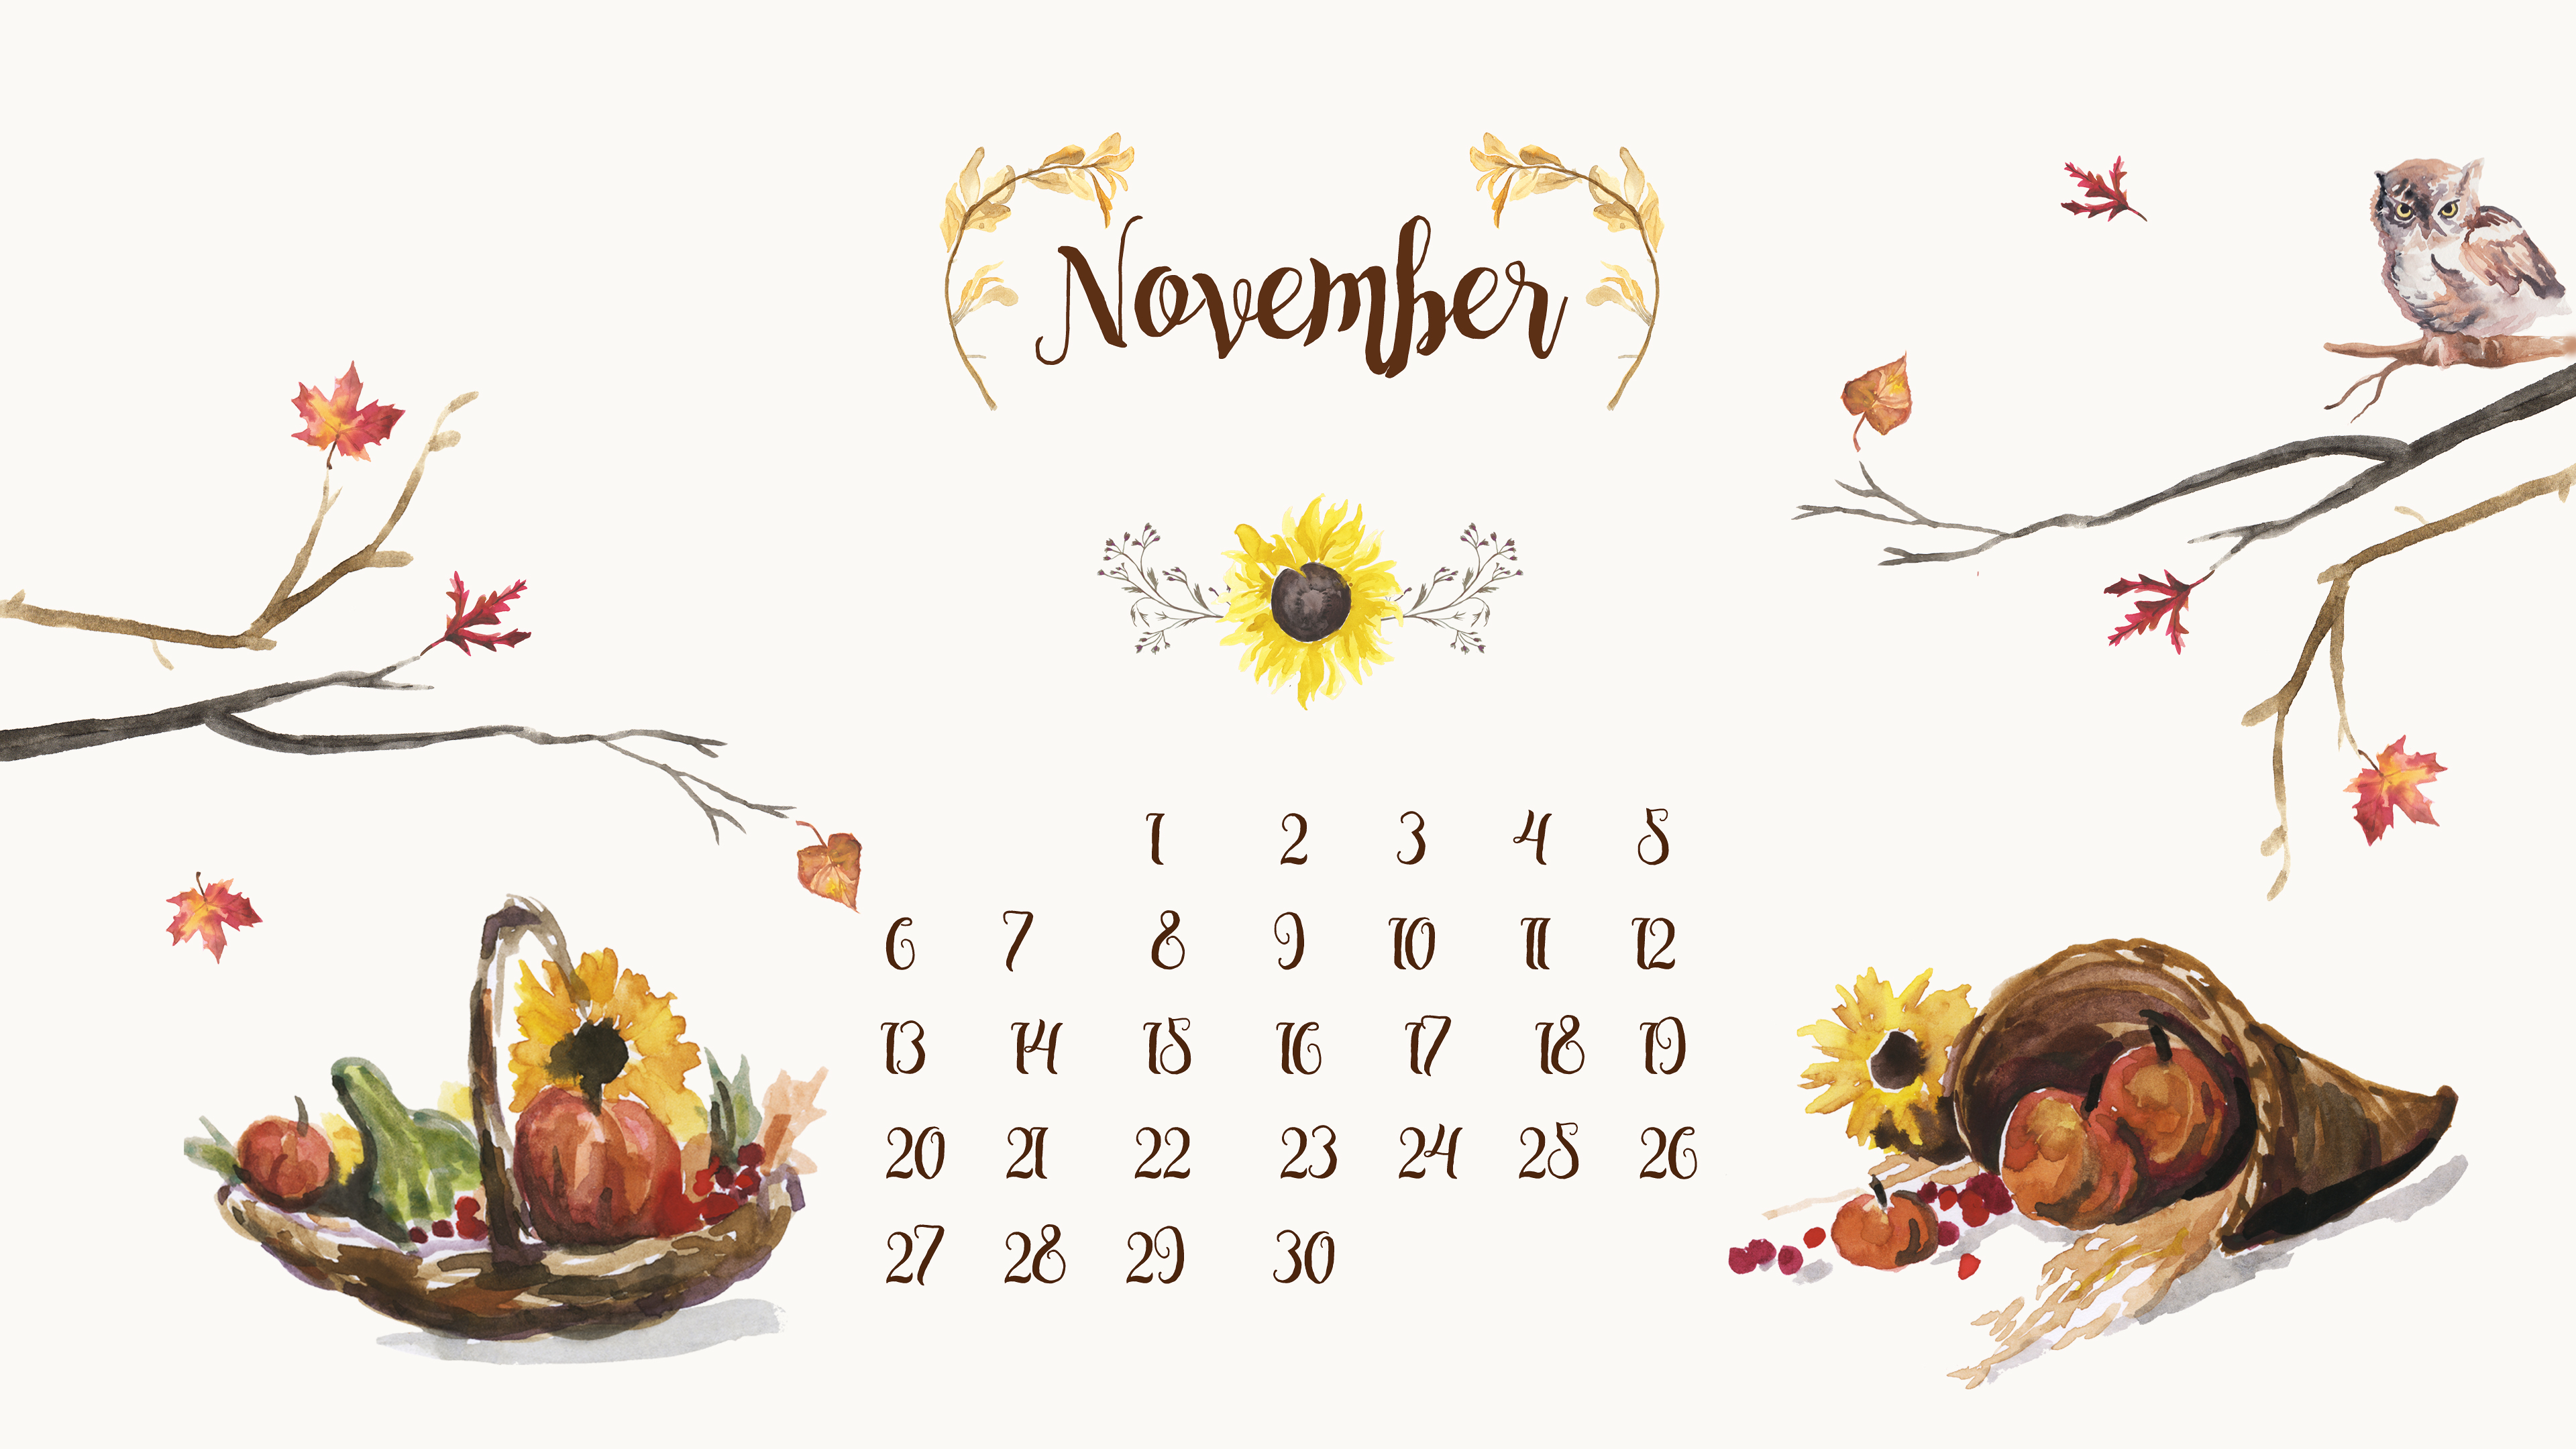 Calendar Live Wallpaper : Free desktop calendar background november live love